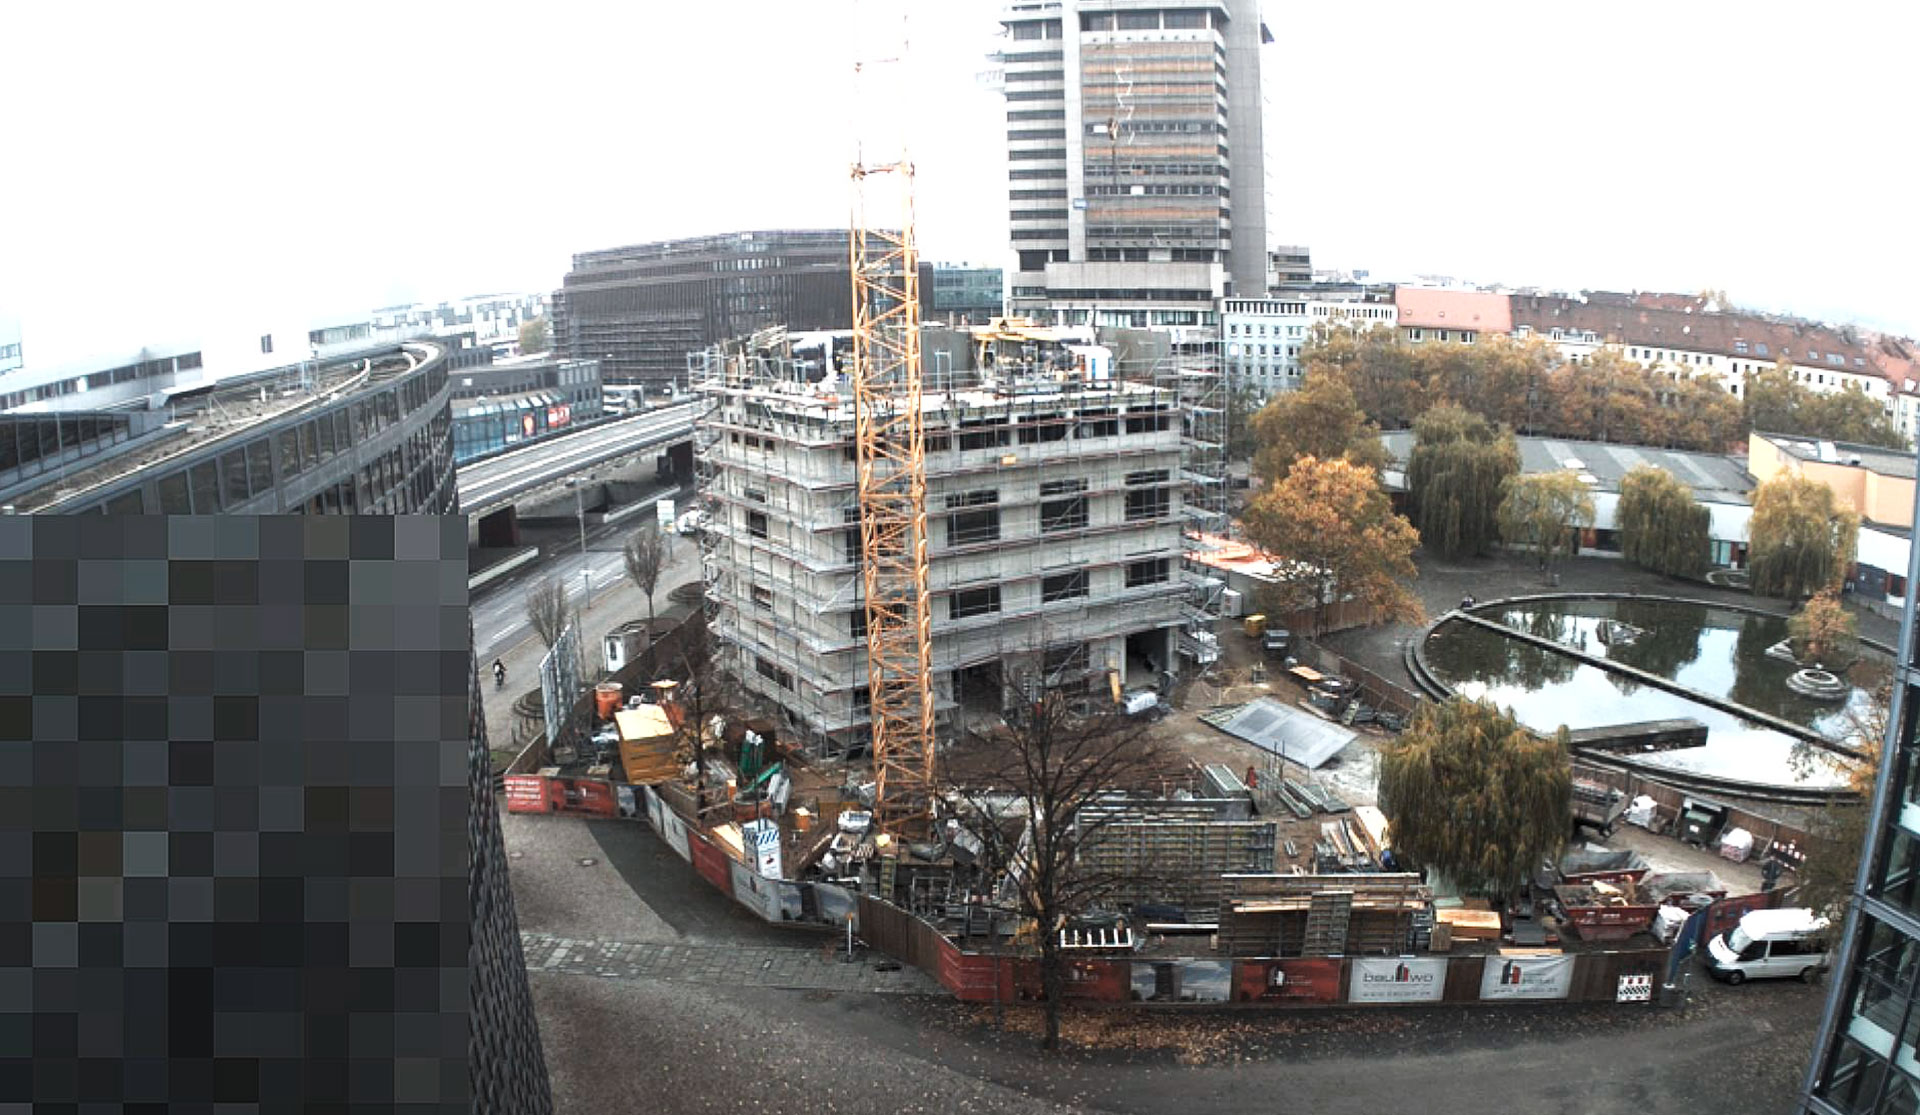 Intercity Hotel - Hannover (DE), November 2018 - Opening 2019